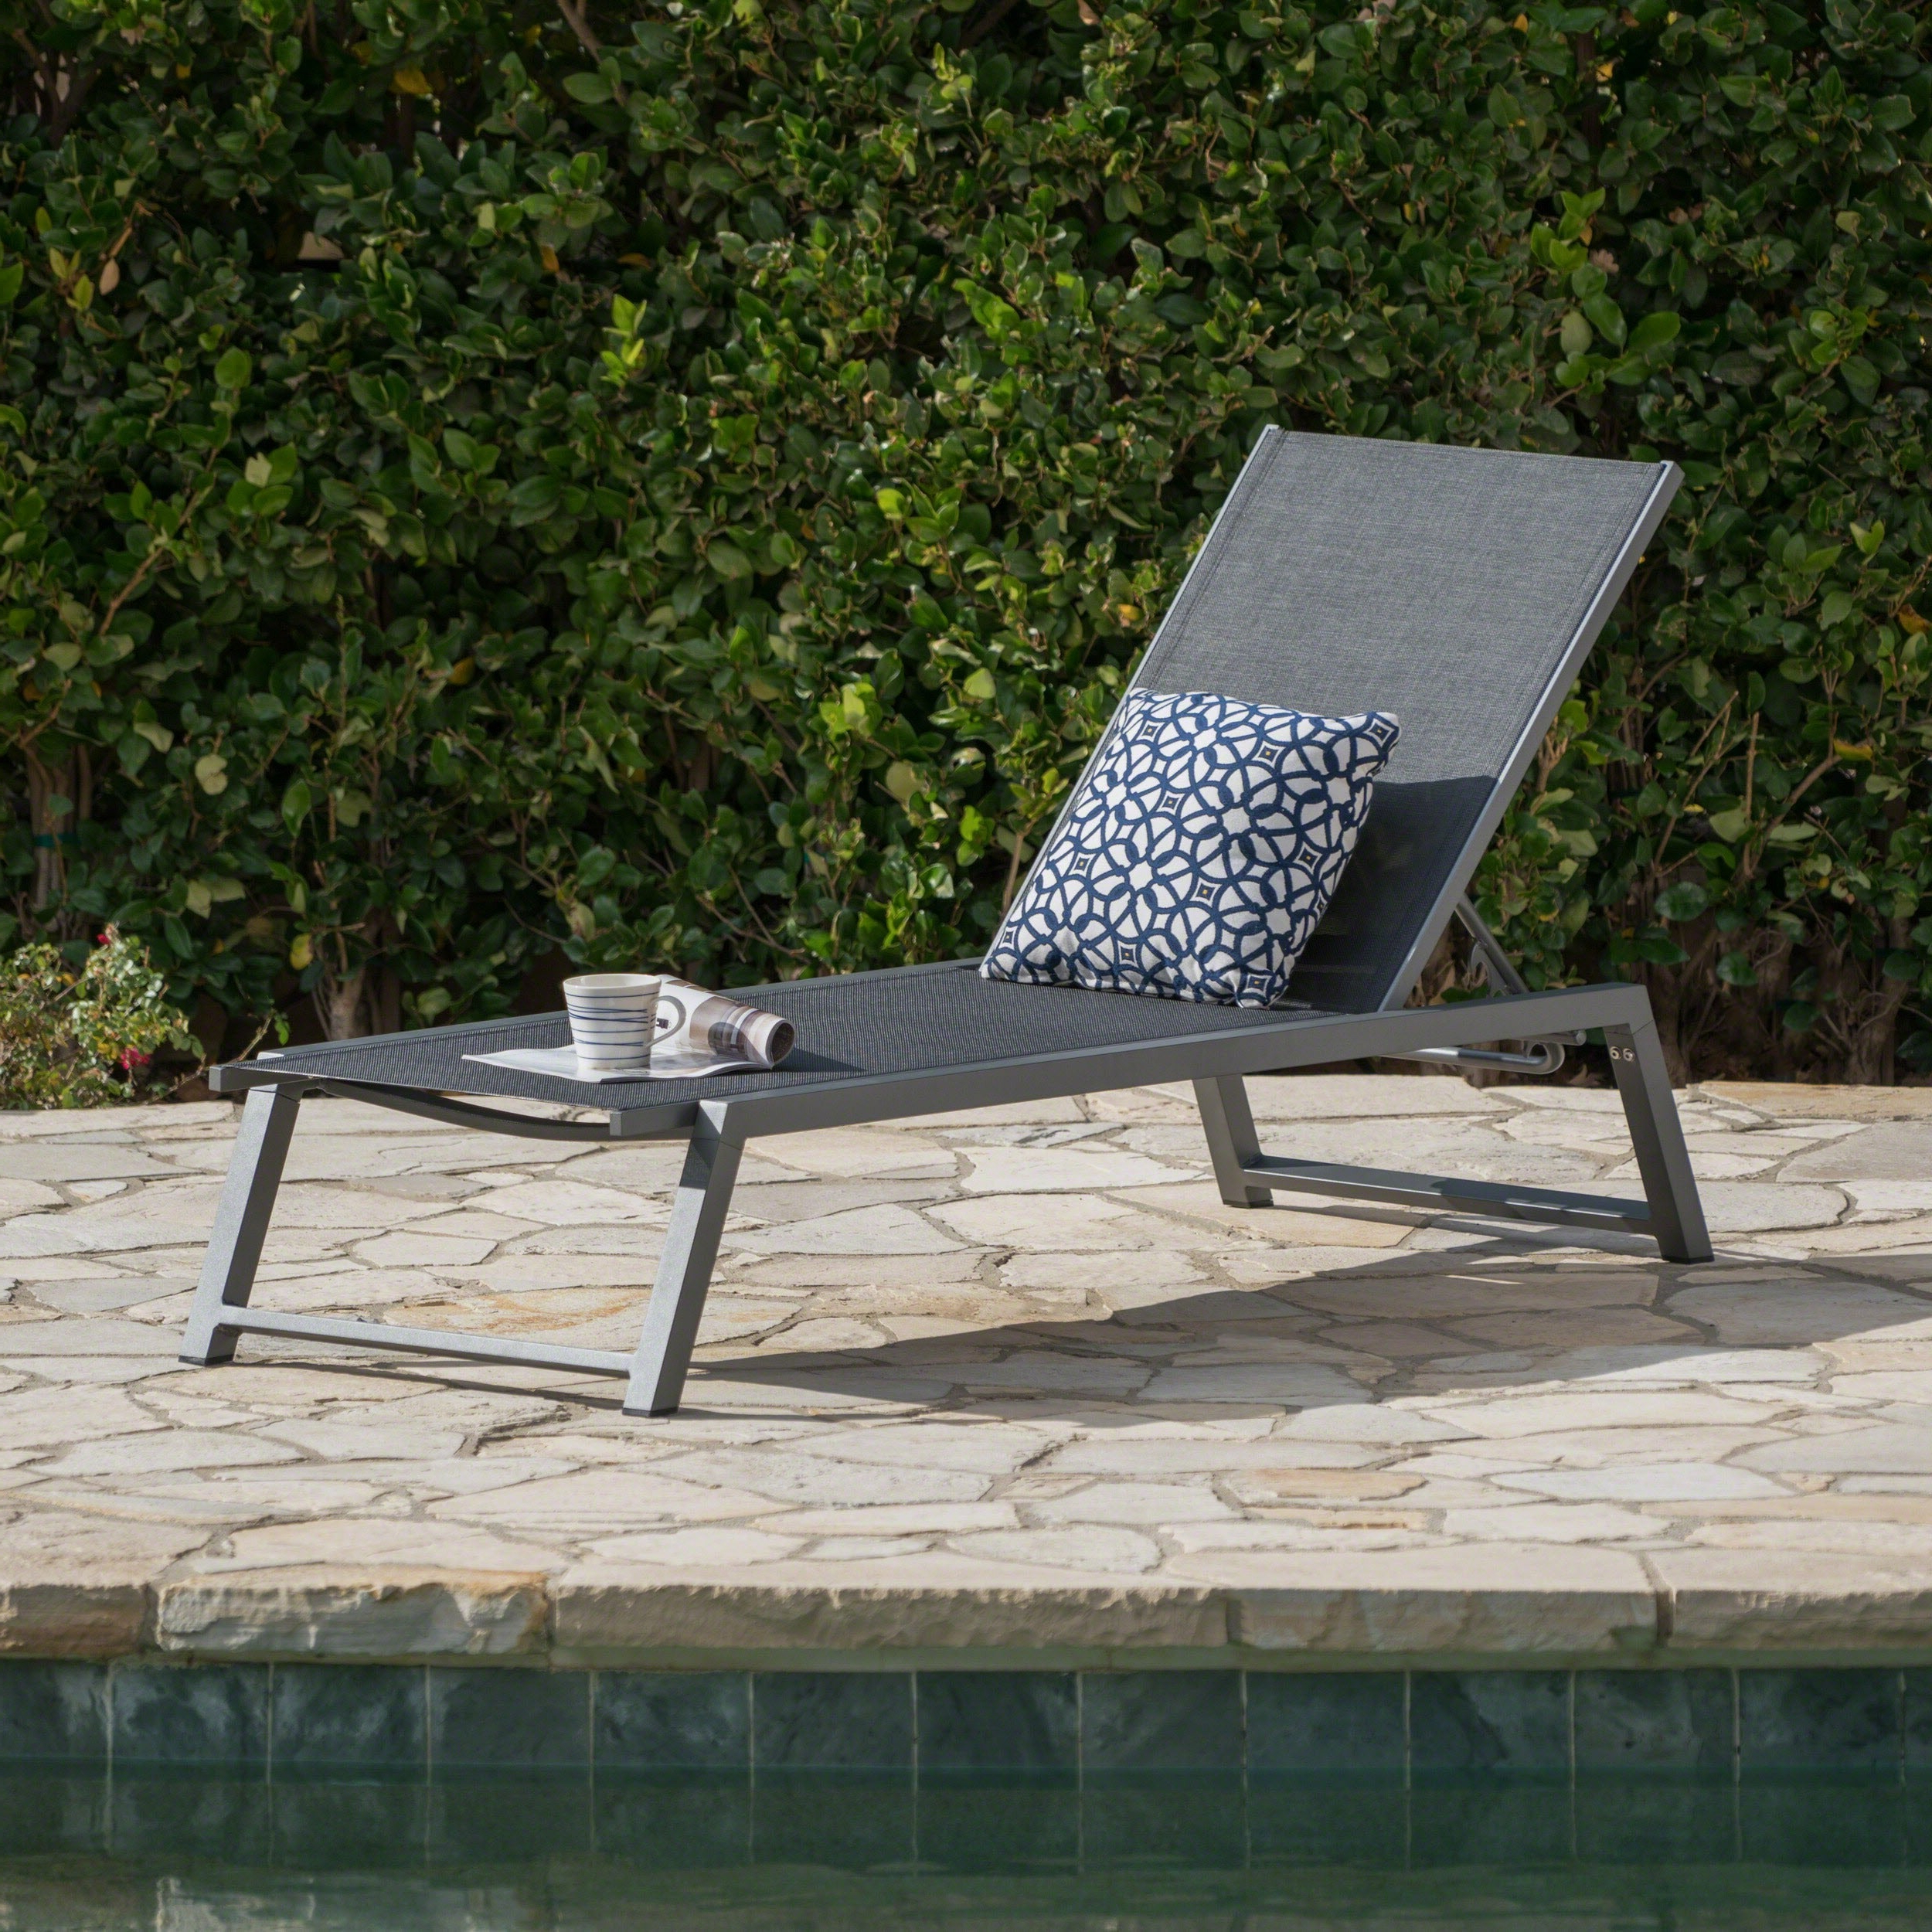 Myers Outdoor Aluminum Mesh Chaise Loungechristopher Knight Home With Trendy Cape Coral Outdoor Aluminum Chaise Lounges (View 18 of 25)